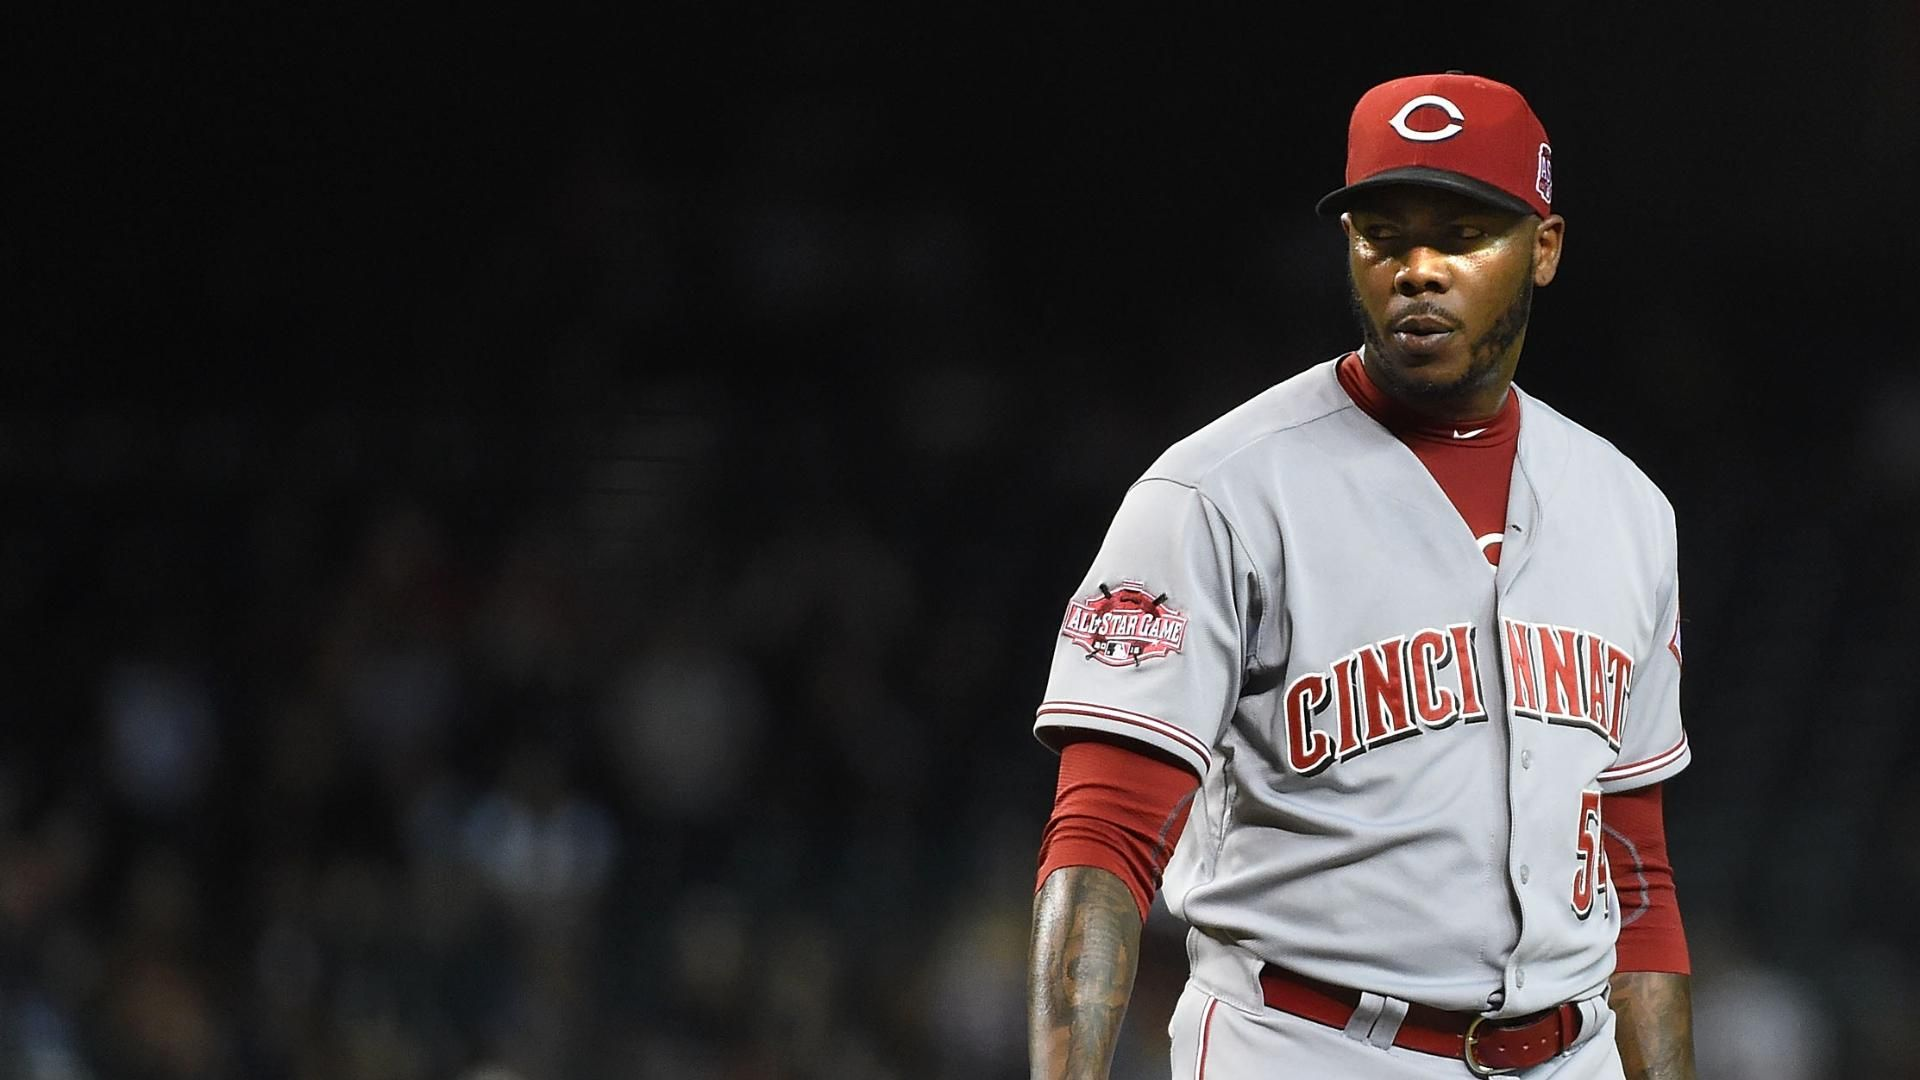 Aroldis Chapman accused of domestic violence